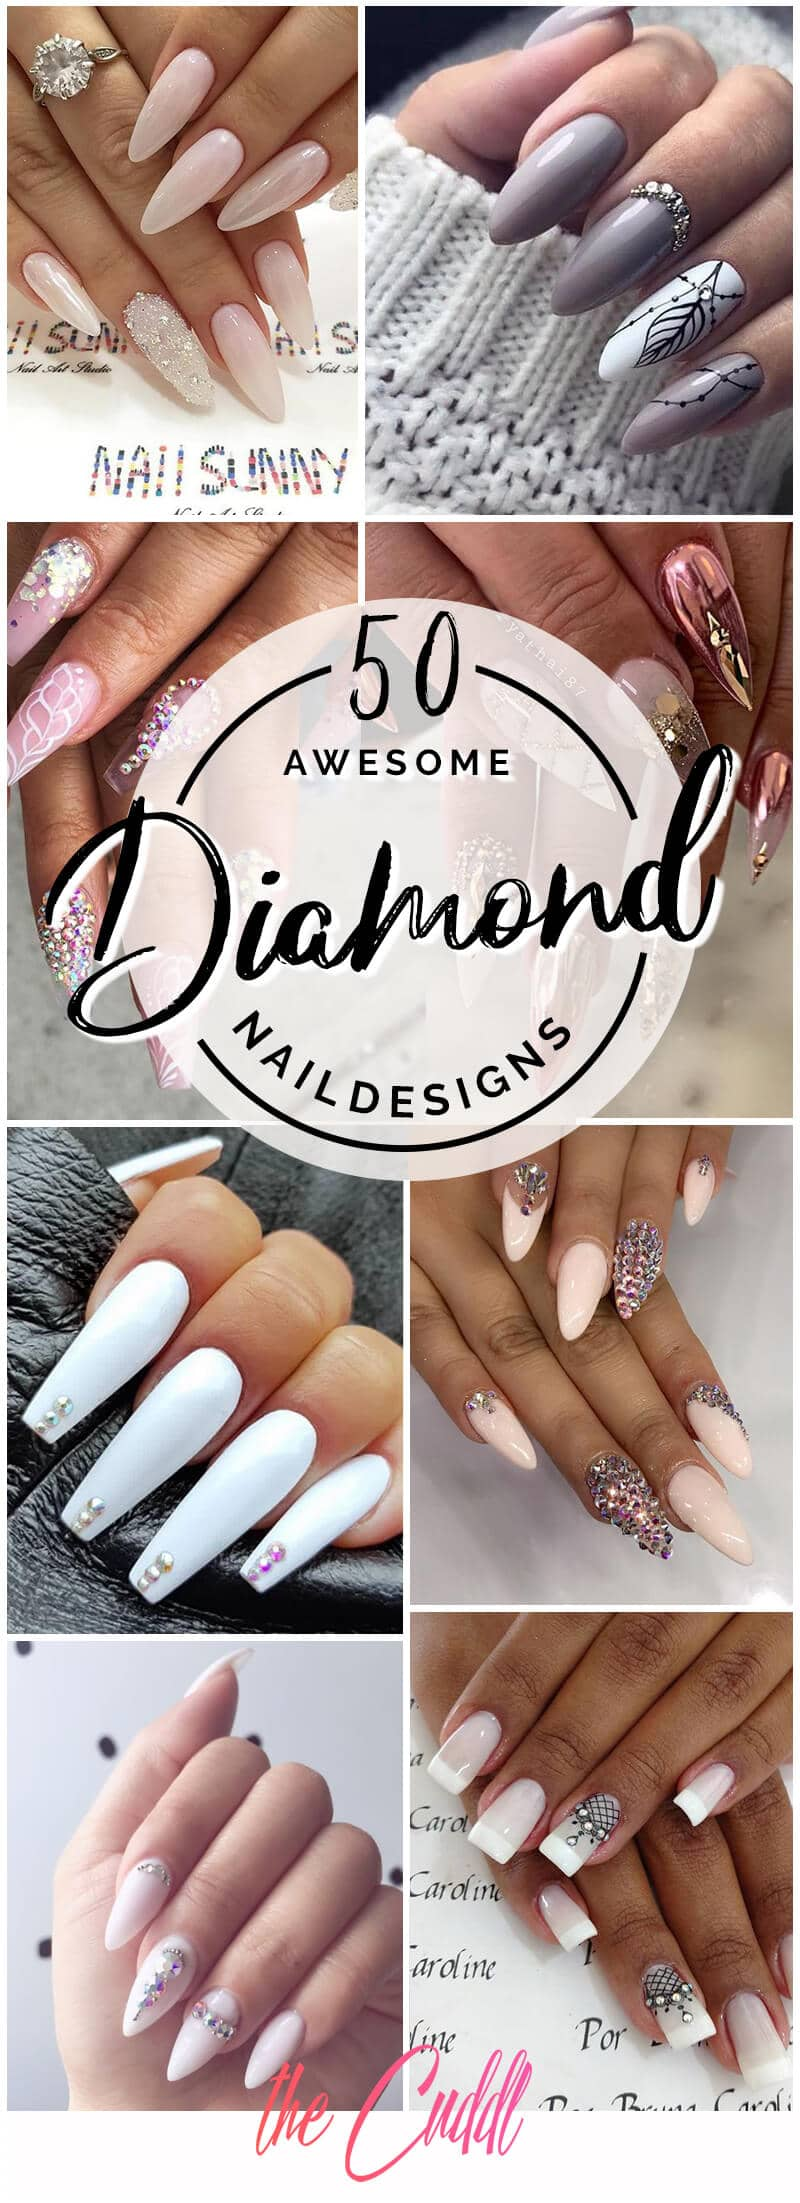 50 Classy Nail Design With Diamonds That Will Steal The Show 2018